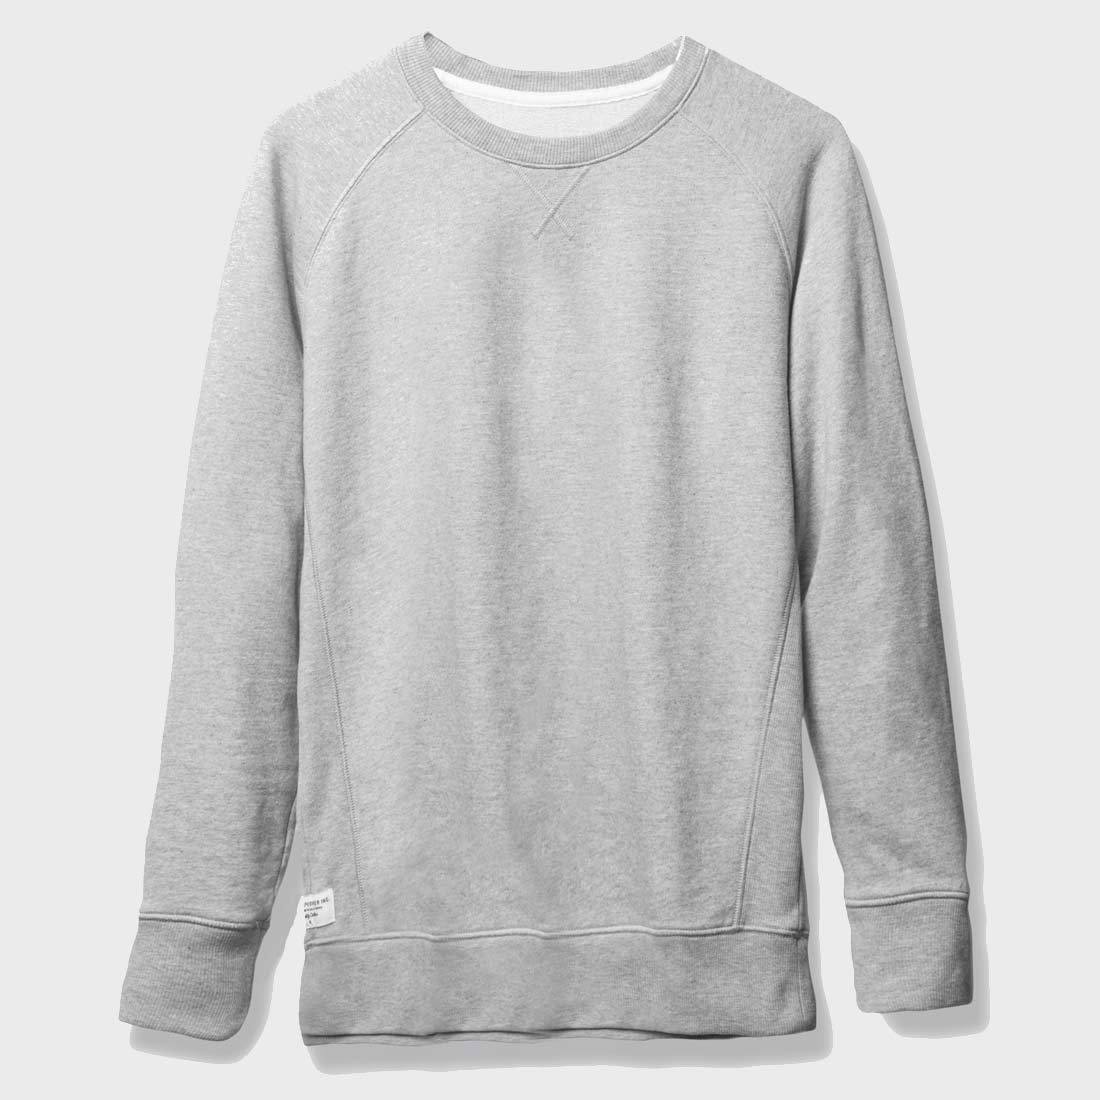 Richer Poorer Sweatshirt Heather Grey